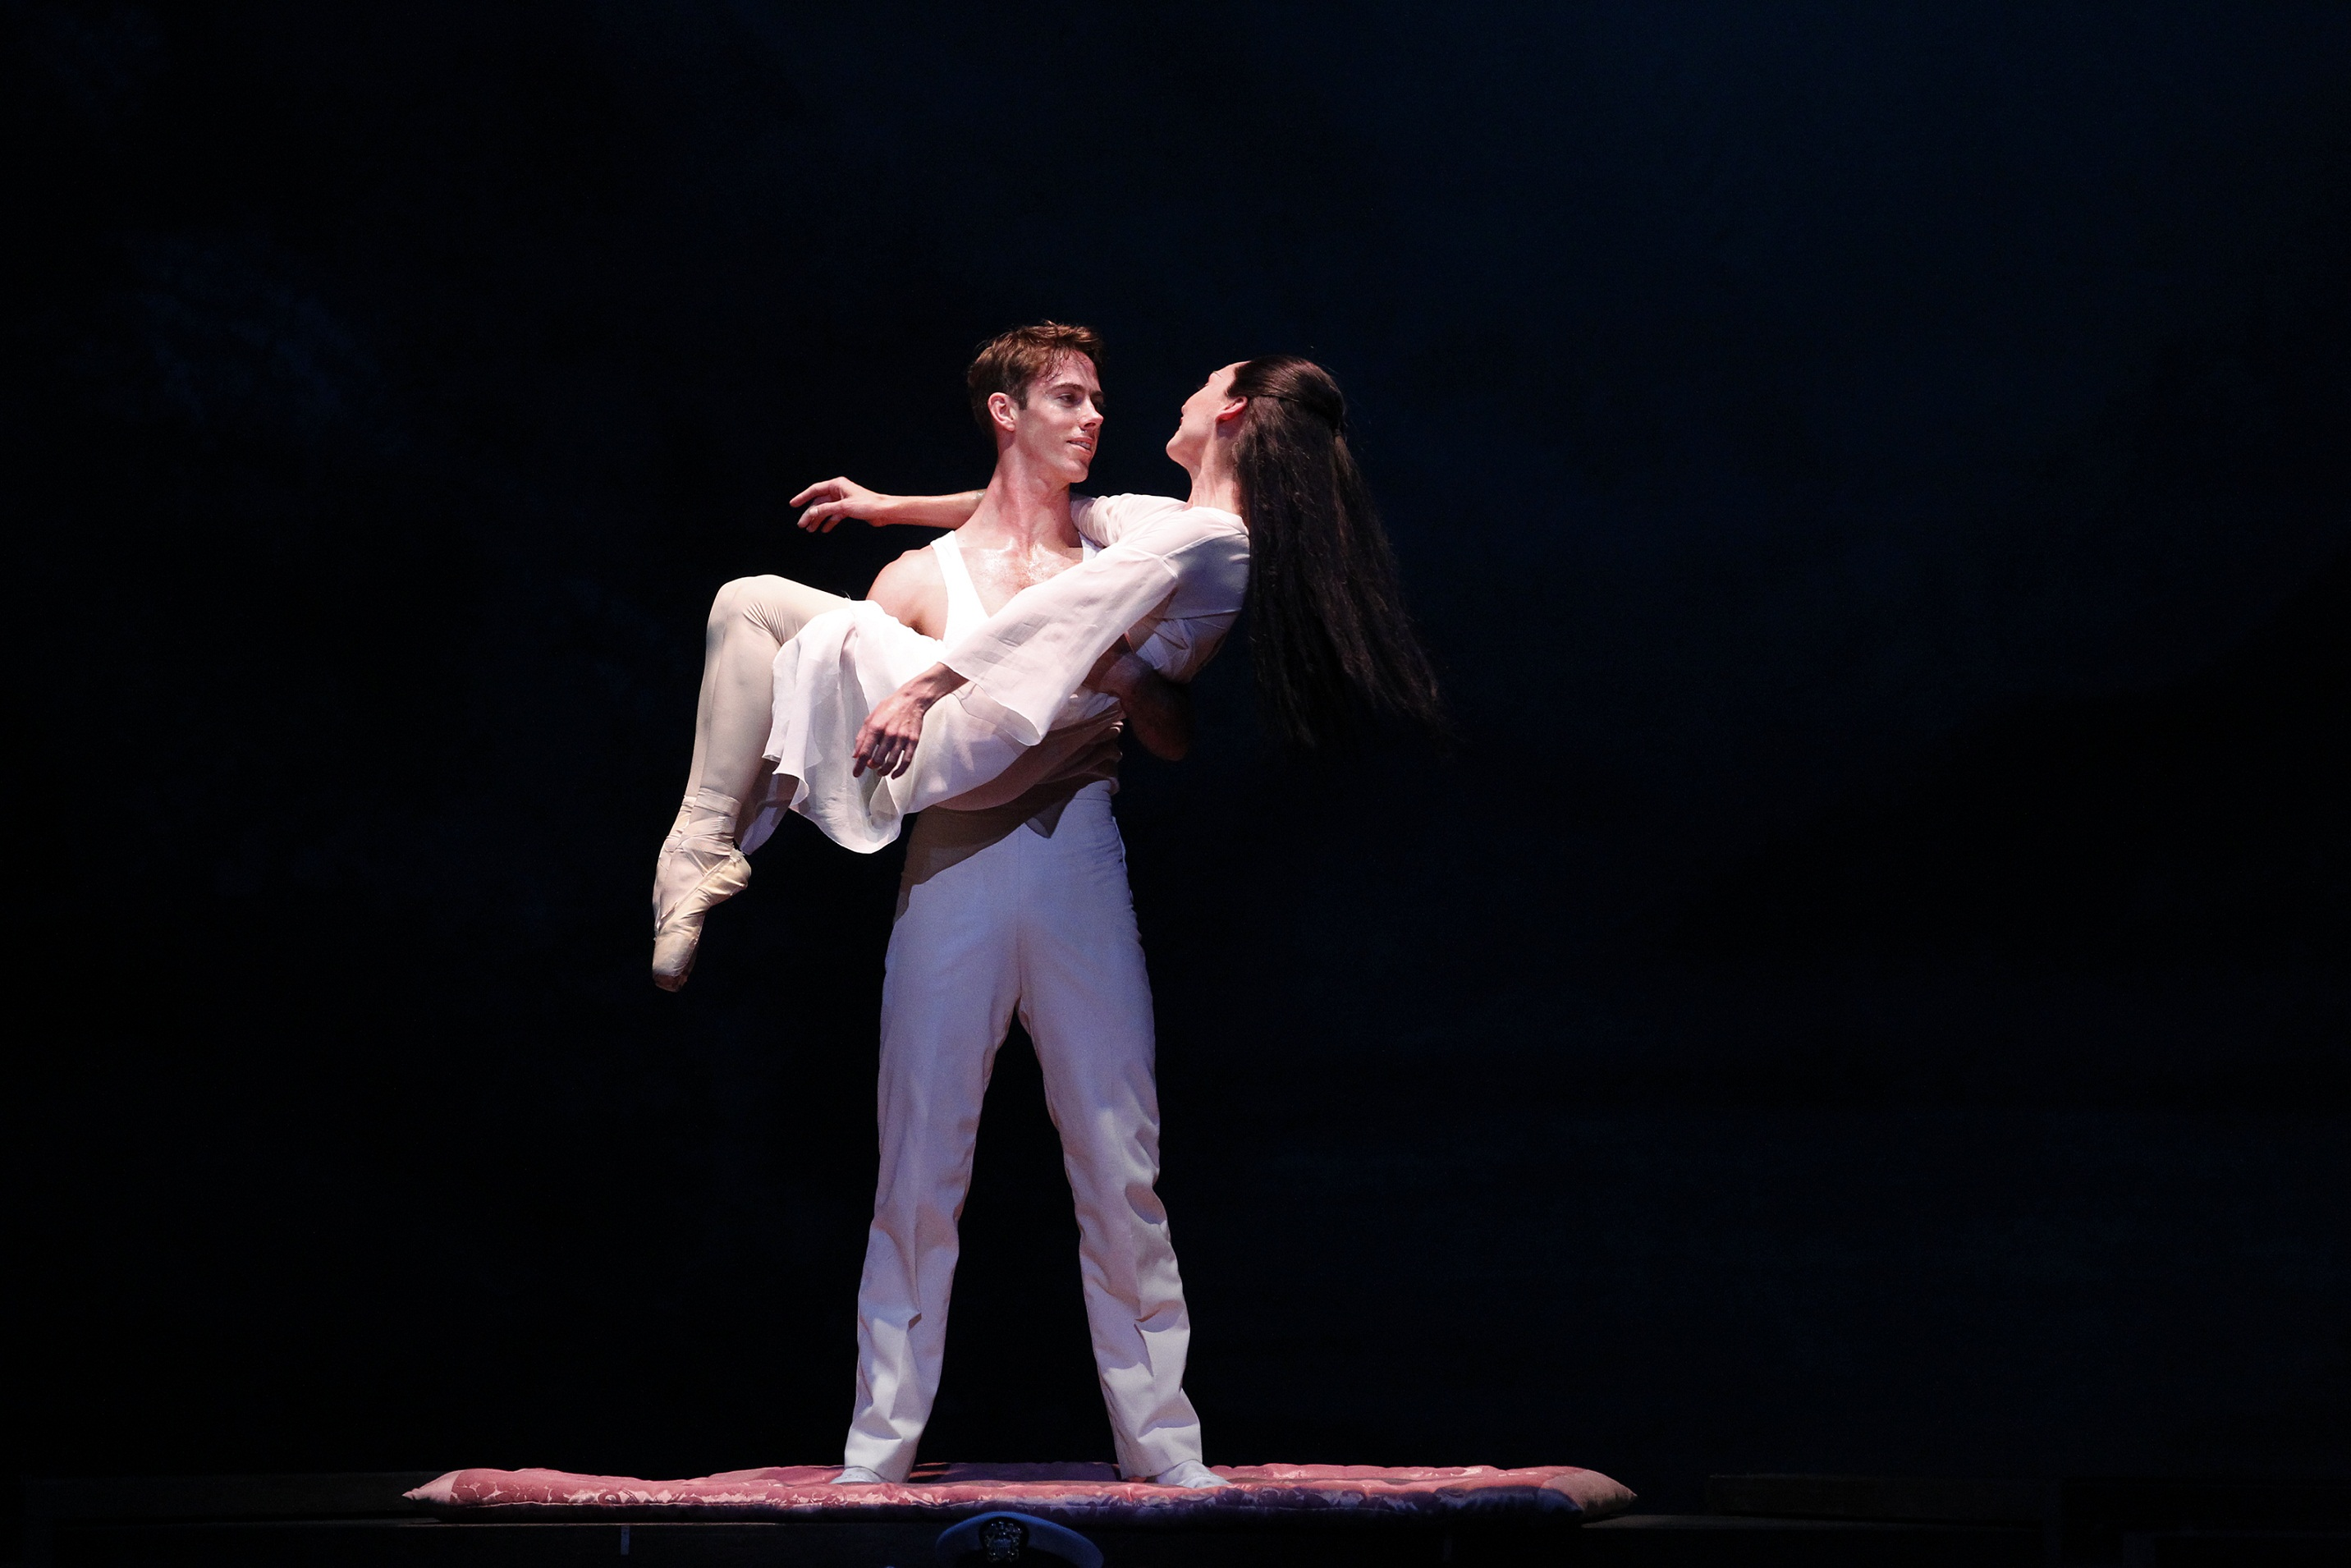 one male ballet dancer holds another female dancer in his arms on stage